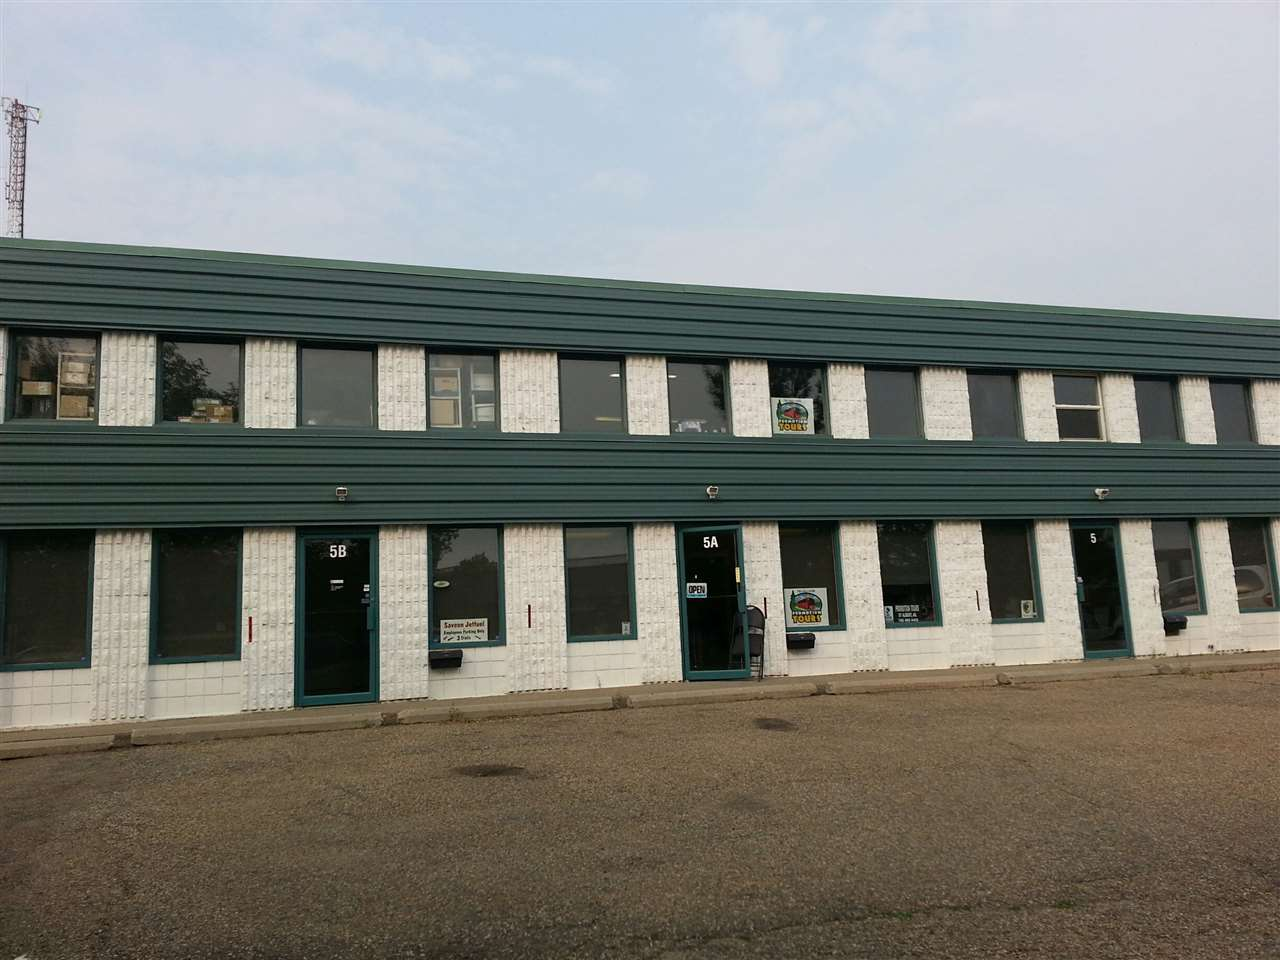 New roof in 2016 & numerous upgrades.  Free standing building - 3 warehouse bays with office & mezzanines.  3 overhead doors - 12' each bay is 1750 sq.ft.  Ideal for owner occupant or investor.  Great access to Anthony Henday at Ray Gibbon Drive.